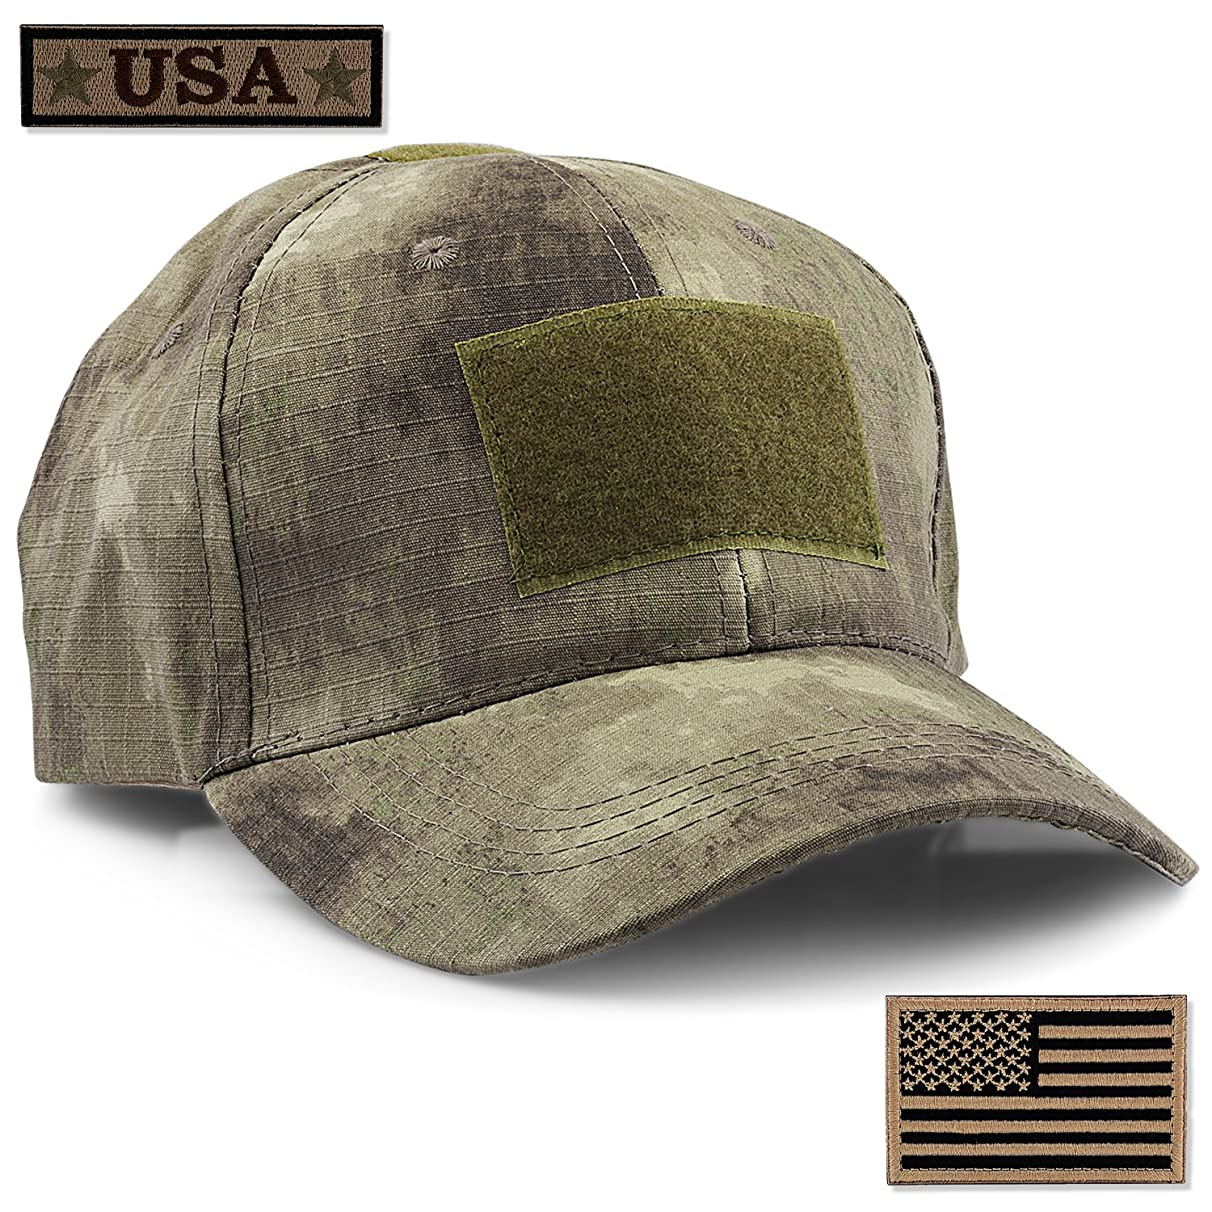 STEVEN G Tactical Military Hat Adjustable Baseball Cap 6 Vent Holes USA Flag for Hunting Fishing Hiking Outdoor Life Men Women Teens Fits Most Head Sizes 2 Interchangeable Patches Included